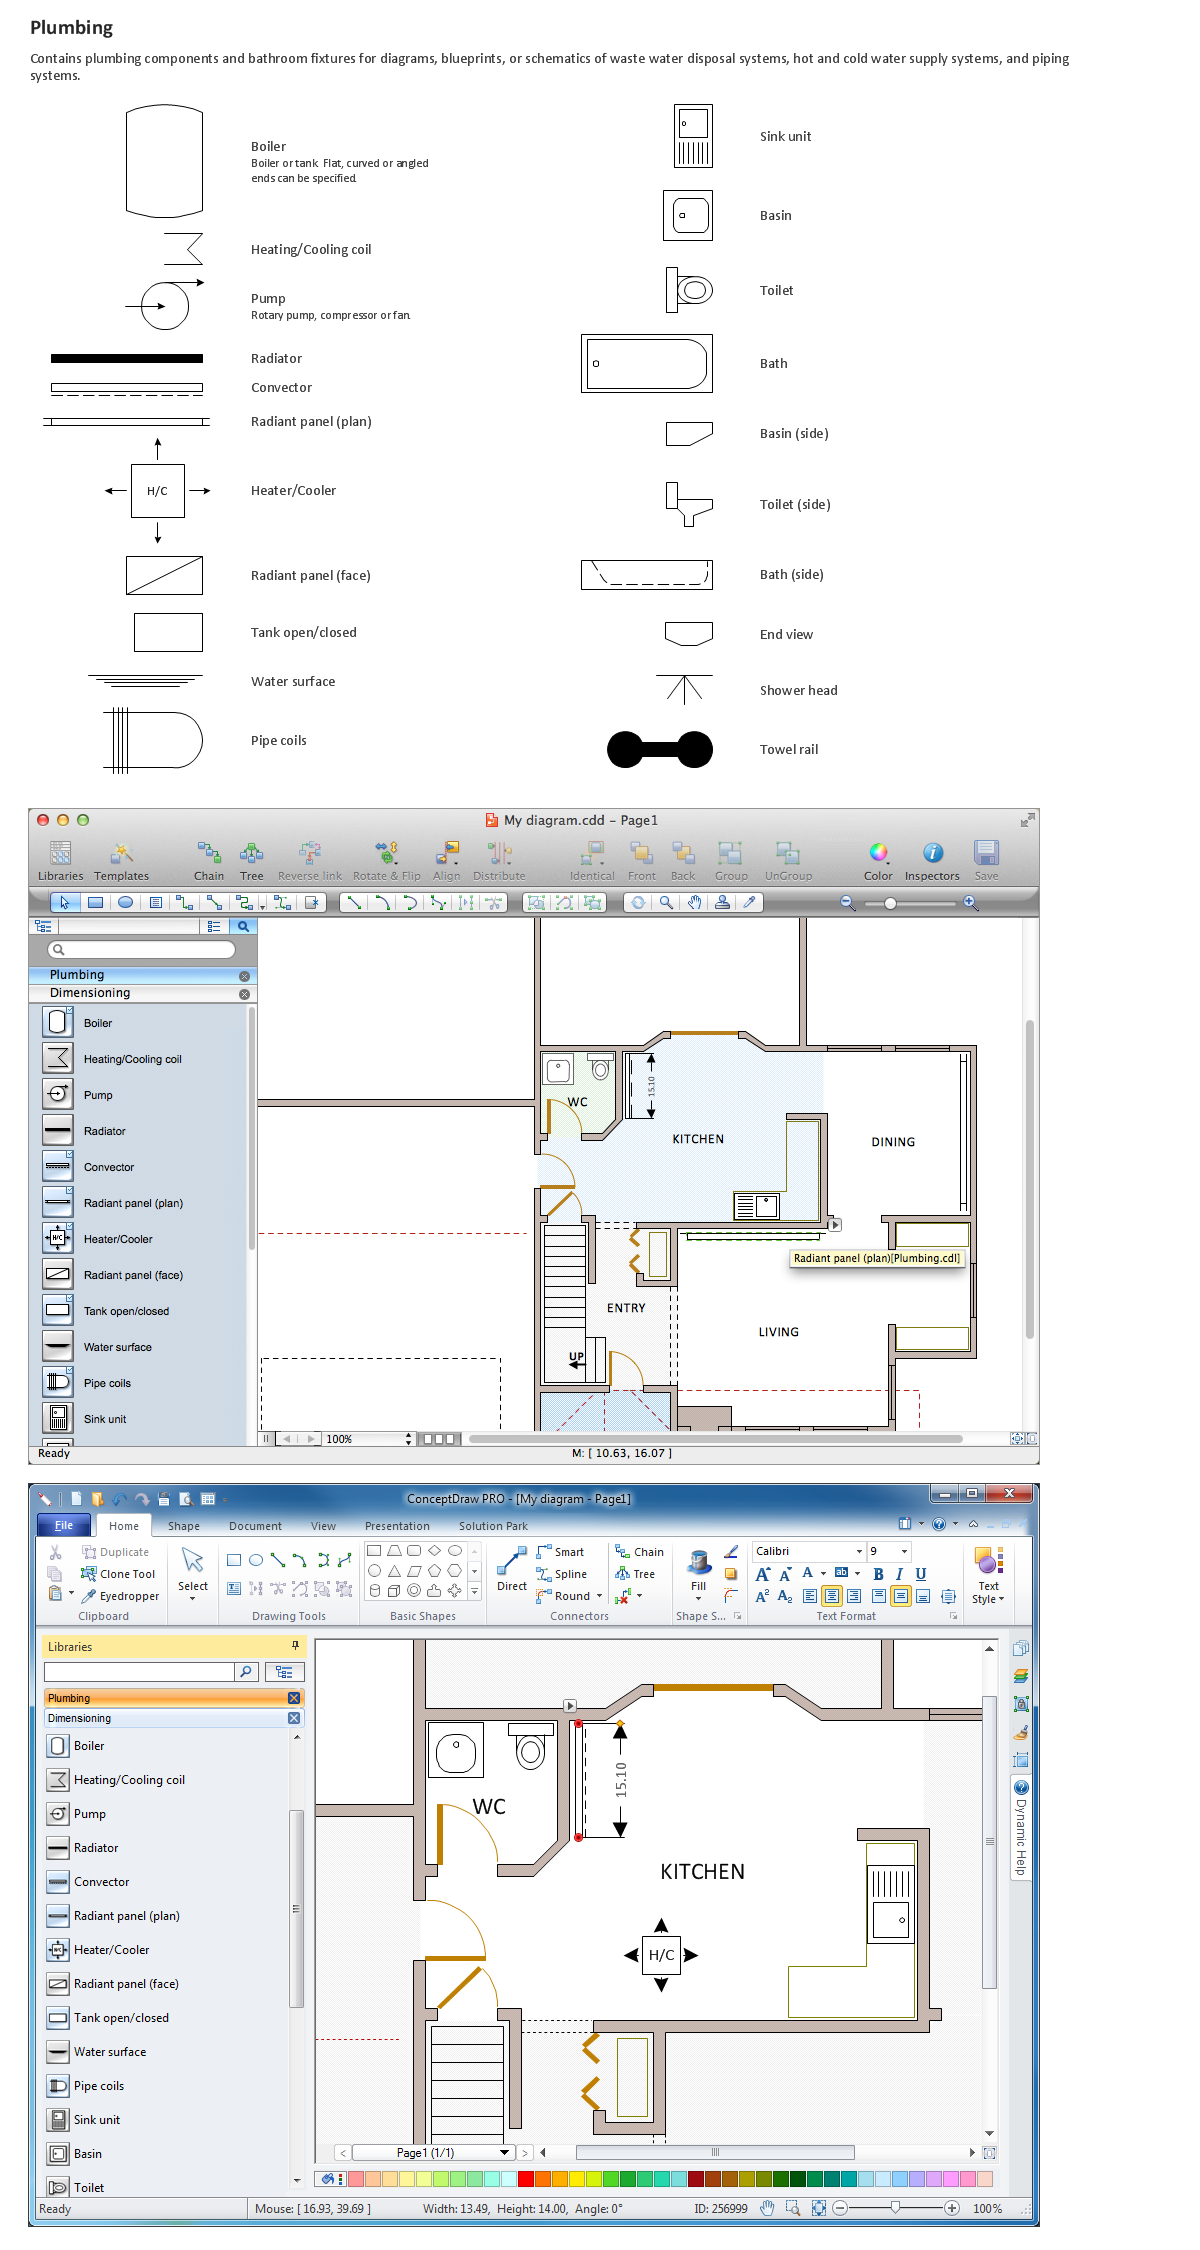 House Electrical Plan Software Diagram Home Wiring Diagrams Codes And Symbols Building Drawing Tools Design Elements Plumbing